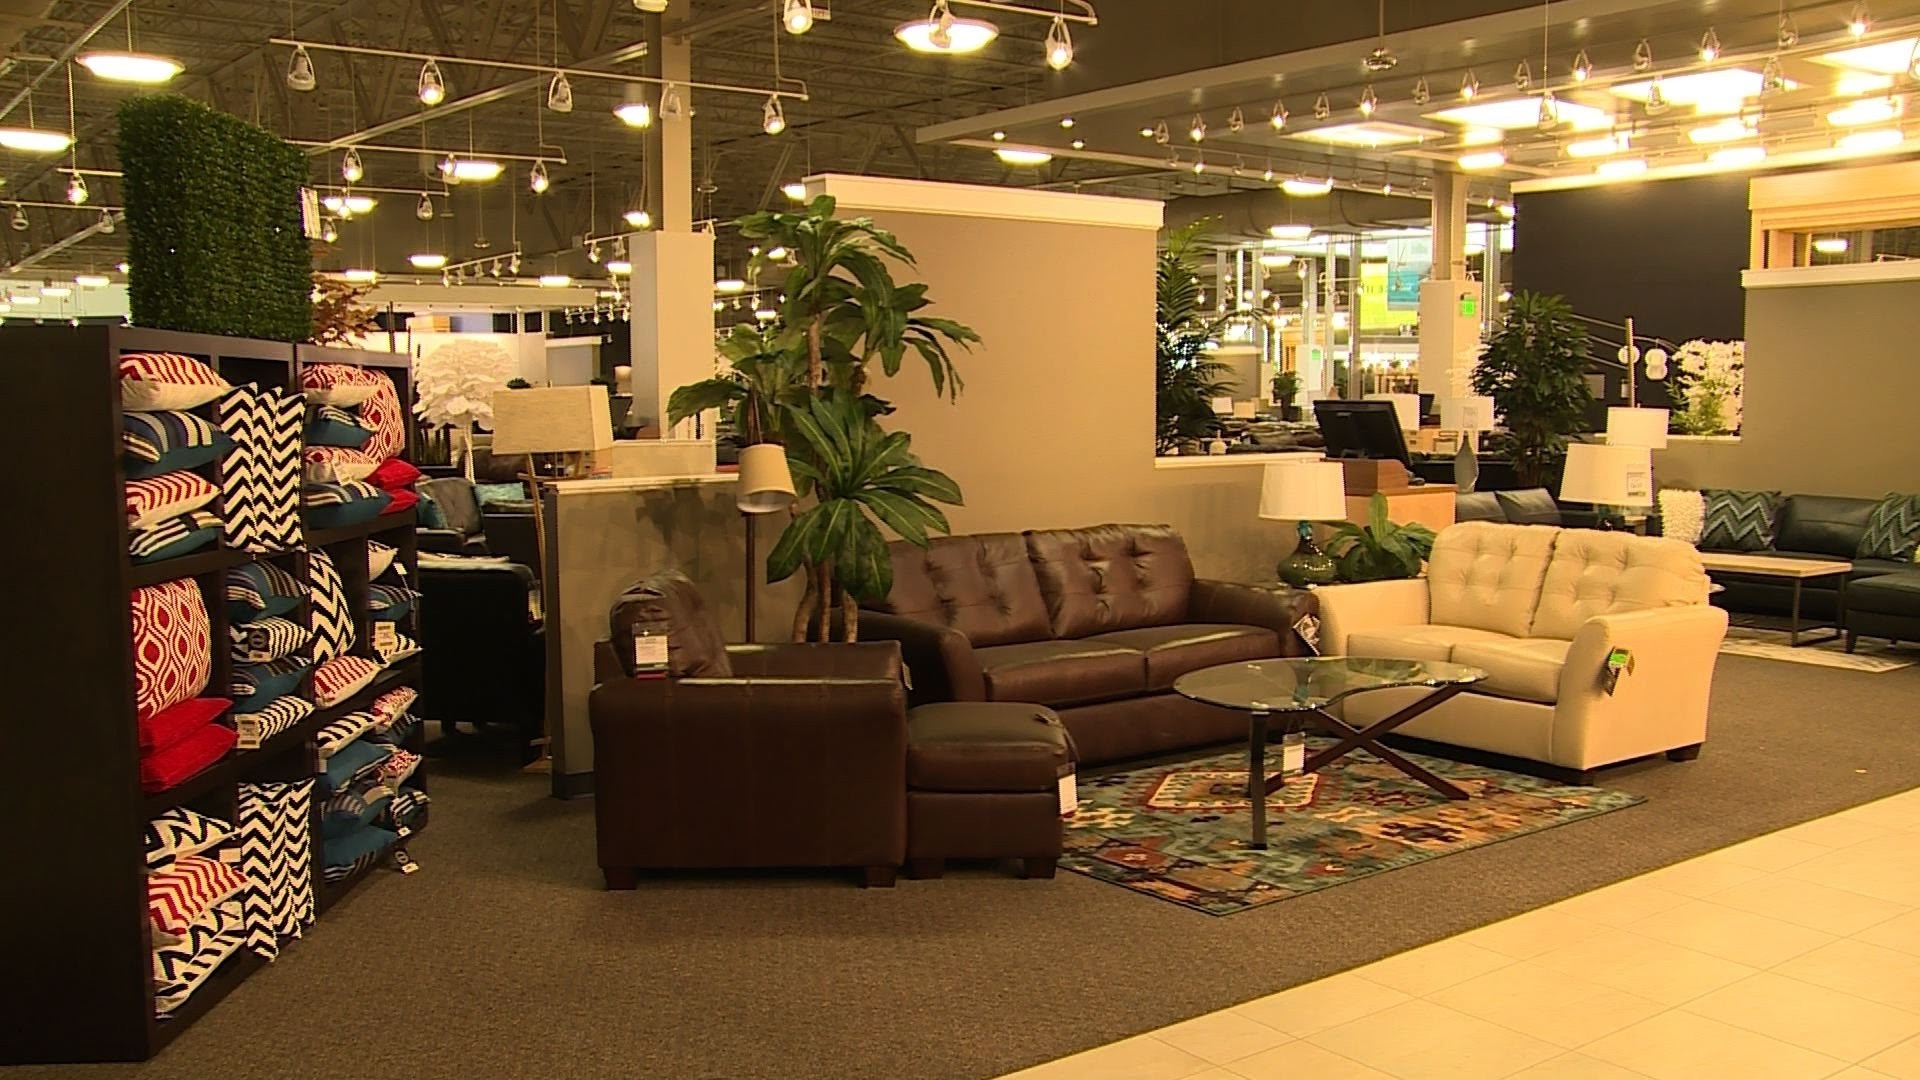 Nebraska Furniture Mart Sectional Sofas With Well Liked Luxury Sectional Sofa Nebraska Furniture Mart – Buildsimplehome (View 18 of 20)